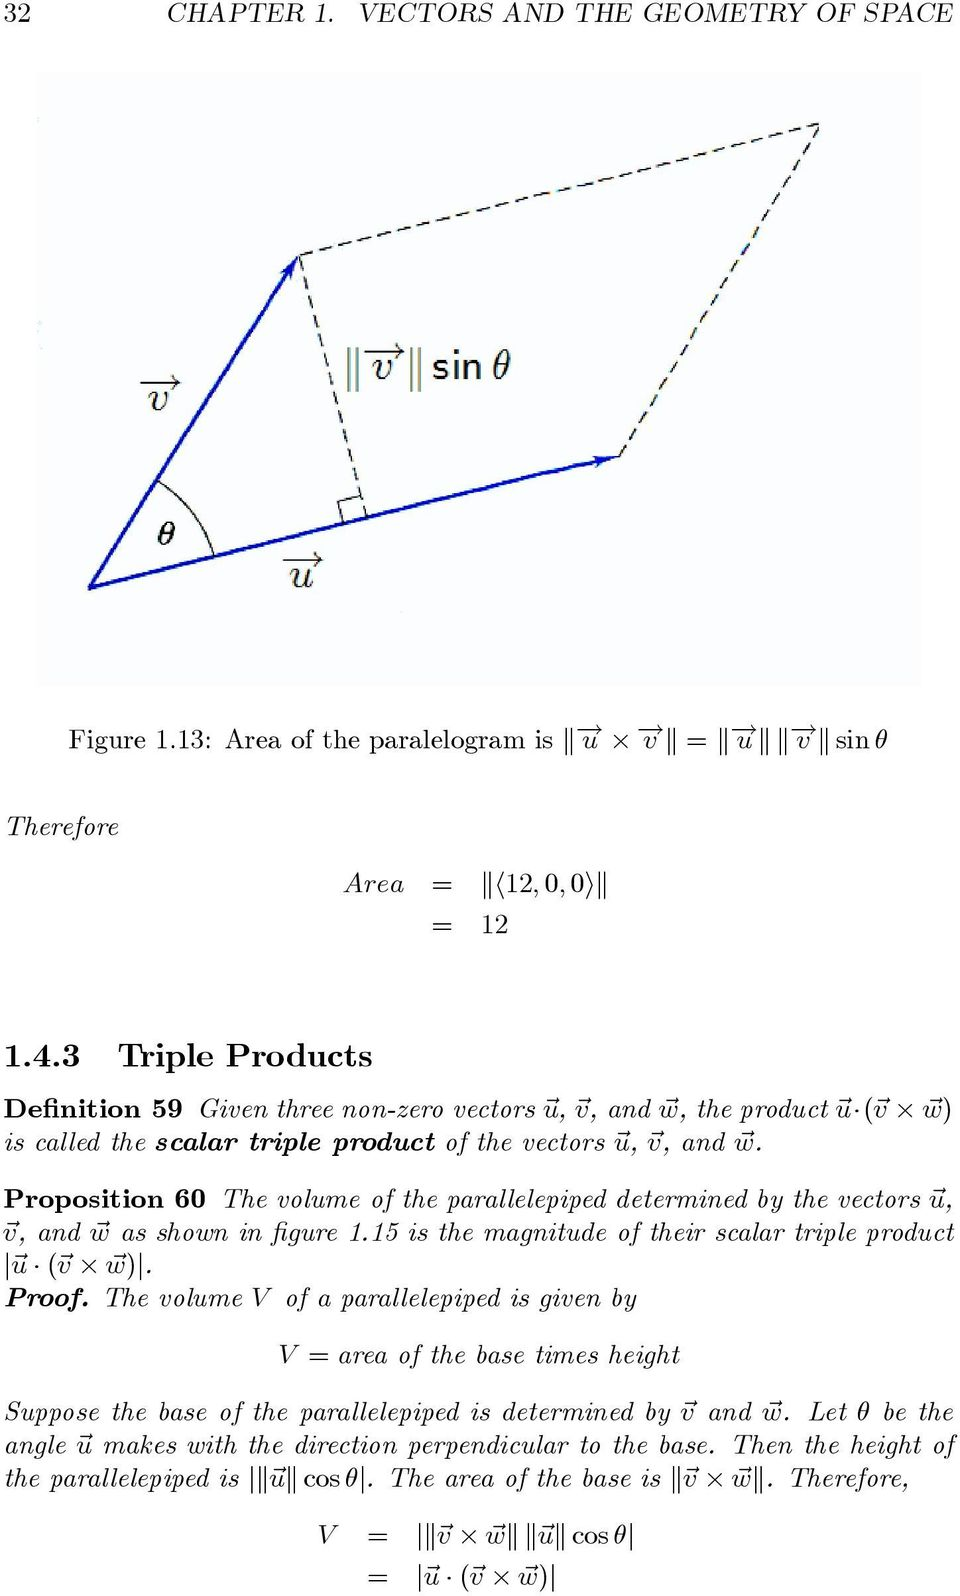 Proposition 60 The volume of the parallelepiped determined by the vectors u, v, and w as shown in figure 1.15 is the magnitude of their scalar triple product u ( v w). Proof.